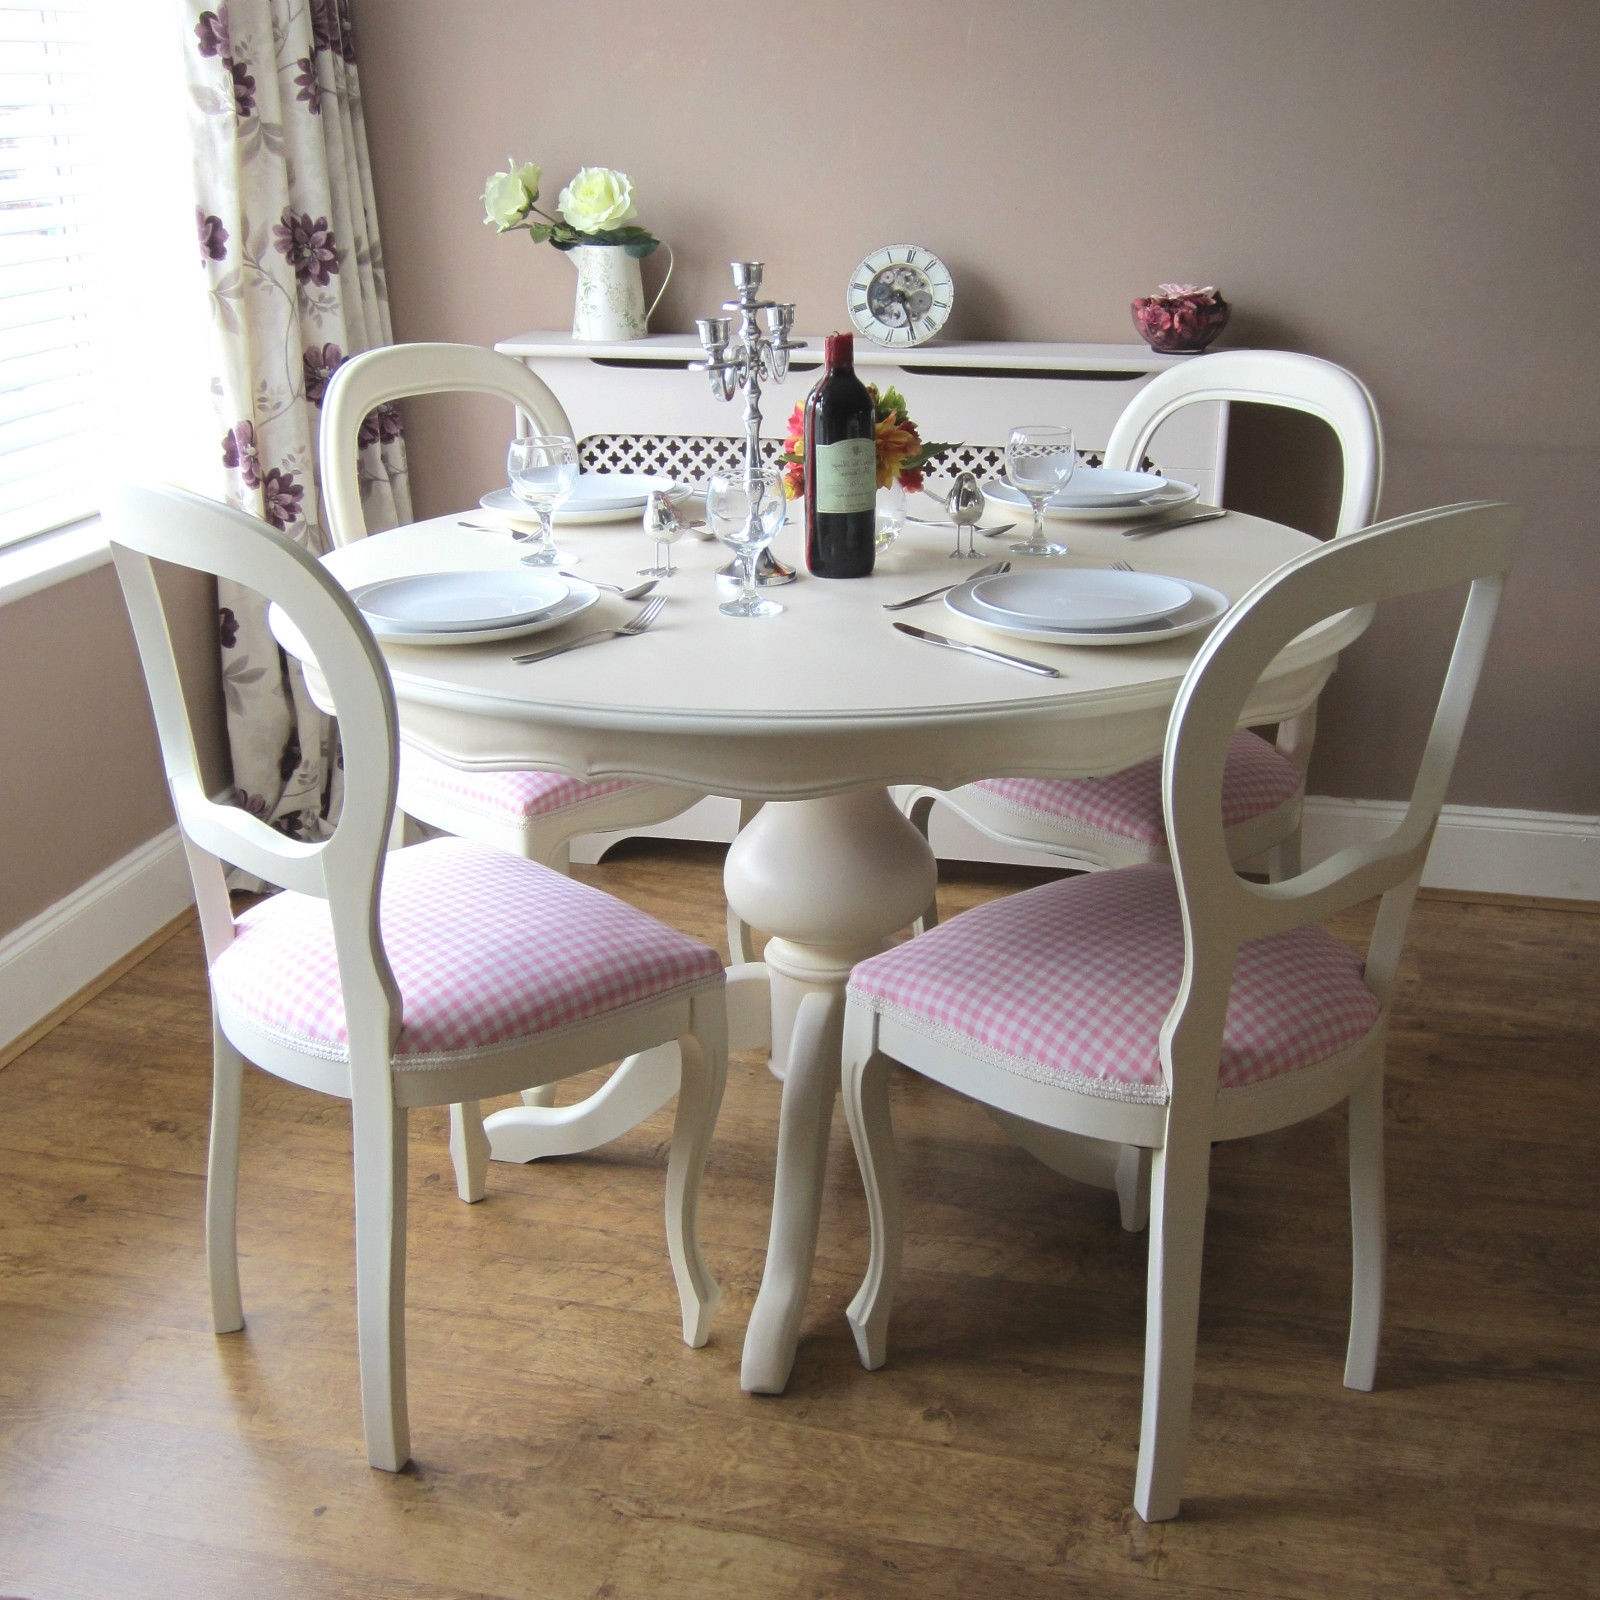 Shabby Chic Table And Chairs (View 18 of 25)